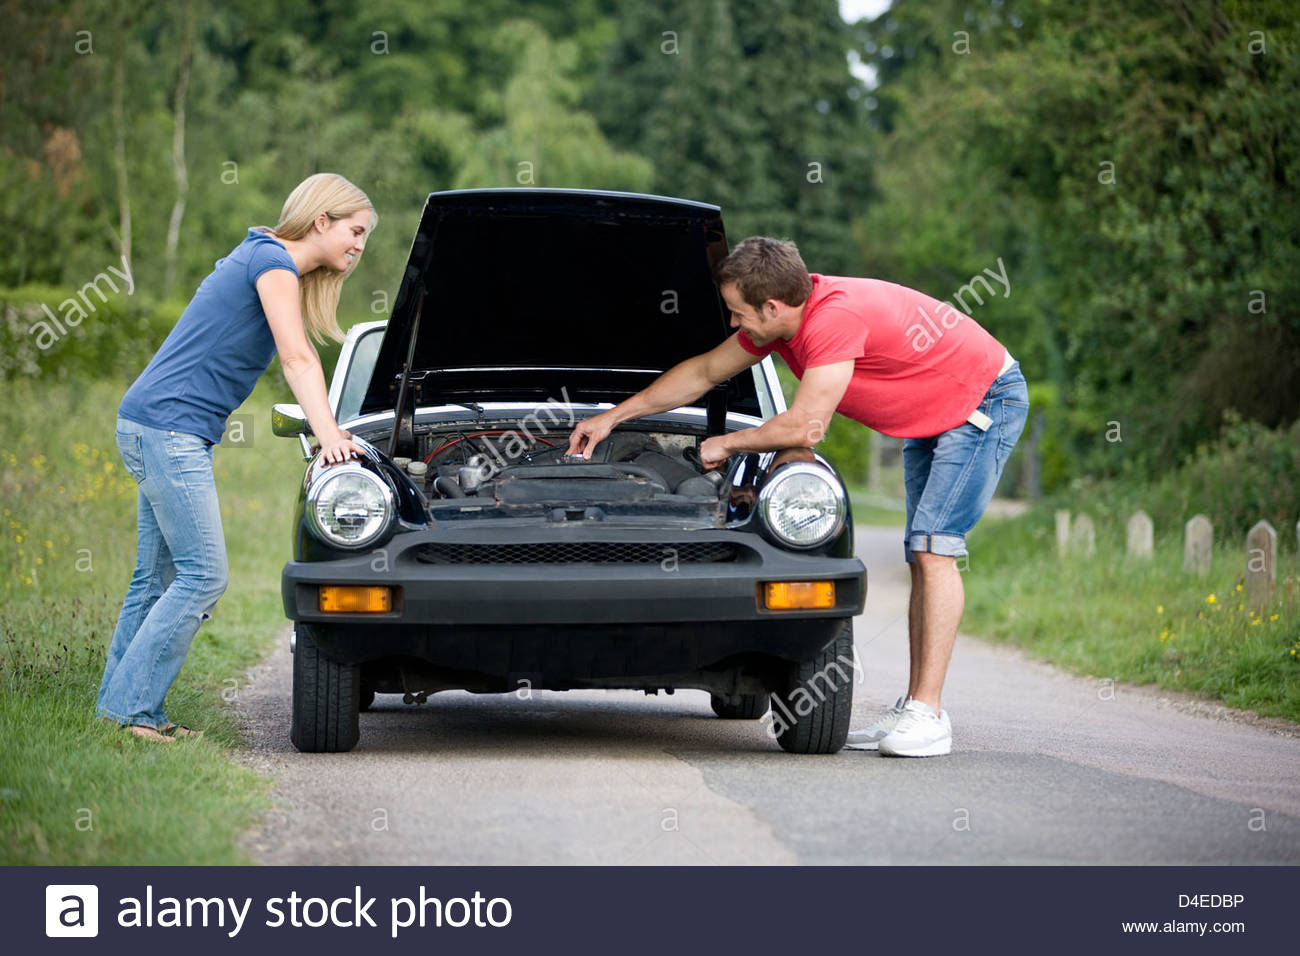 A young couple standing next to their broken down sports car, man looking at the car engine - Stock Image